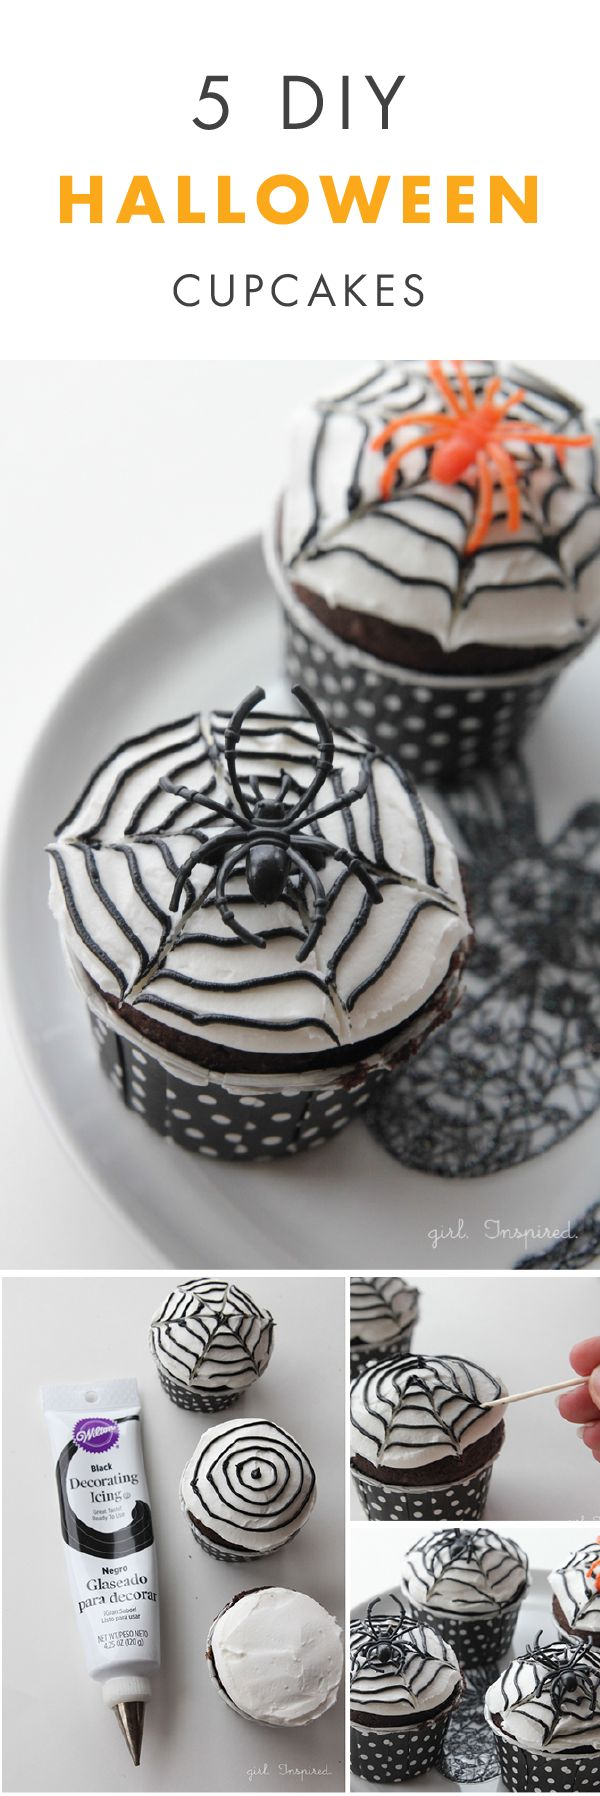 5 diy halloween cupcakes - Where Does The Halloween Celebration Come From